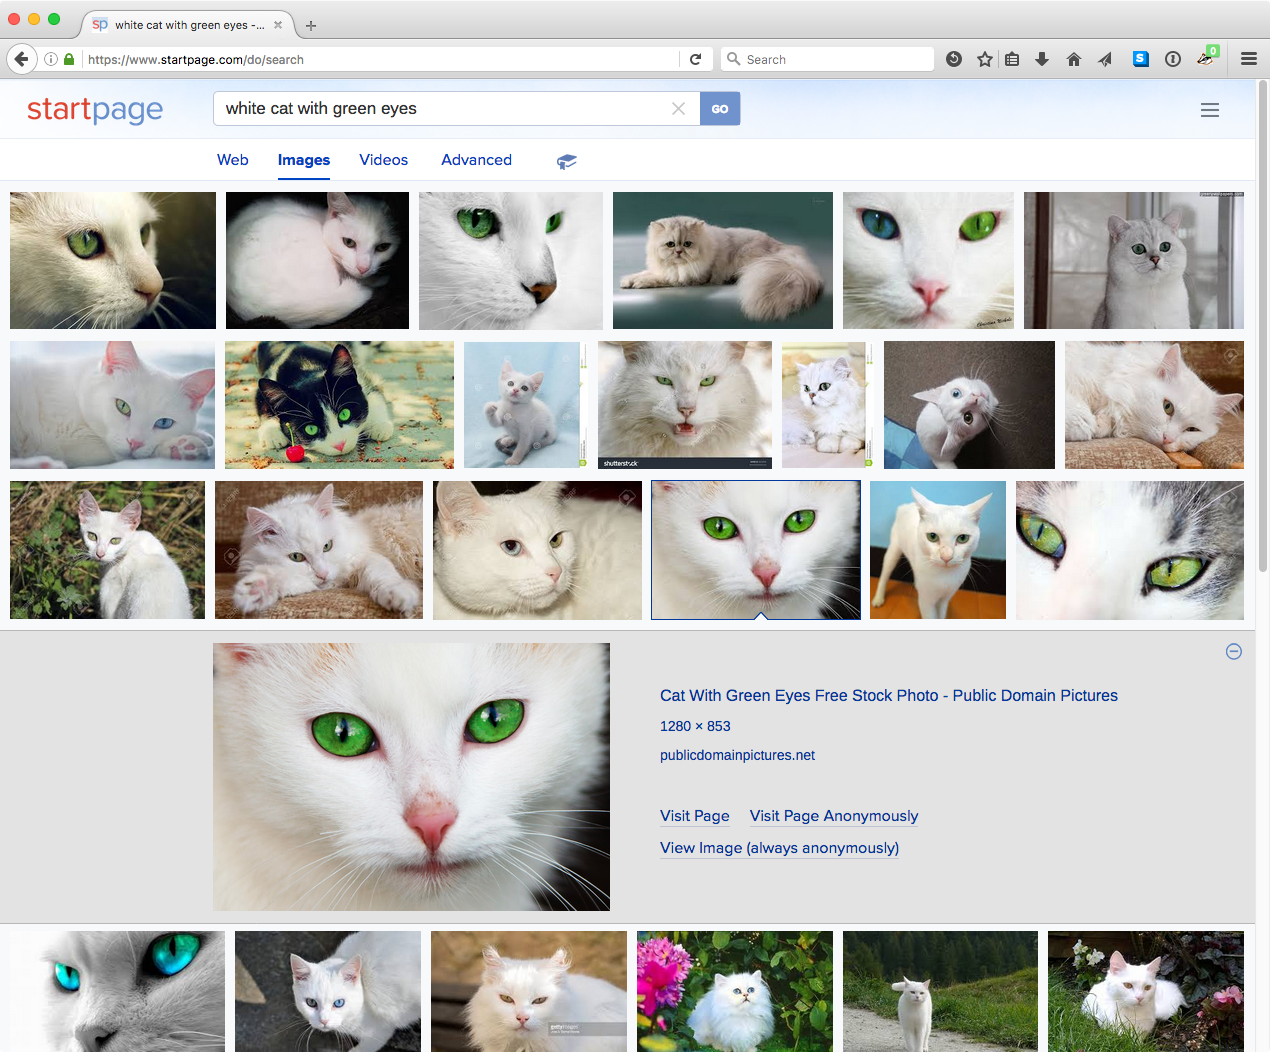 startpage-white-cat-image-search